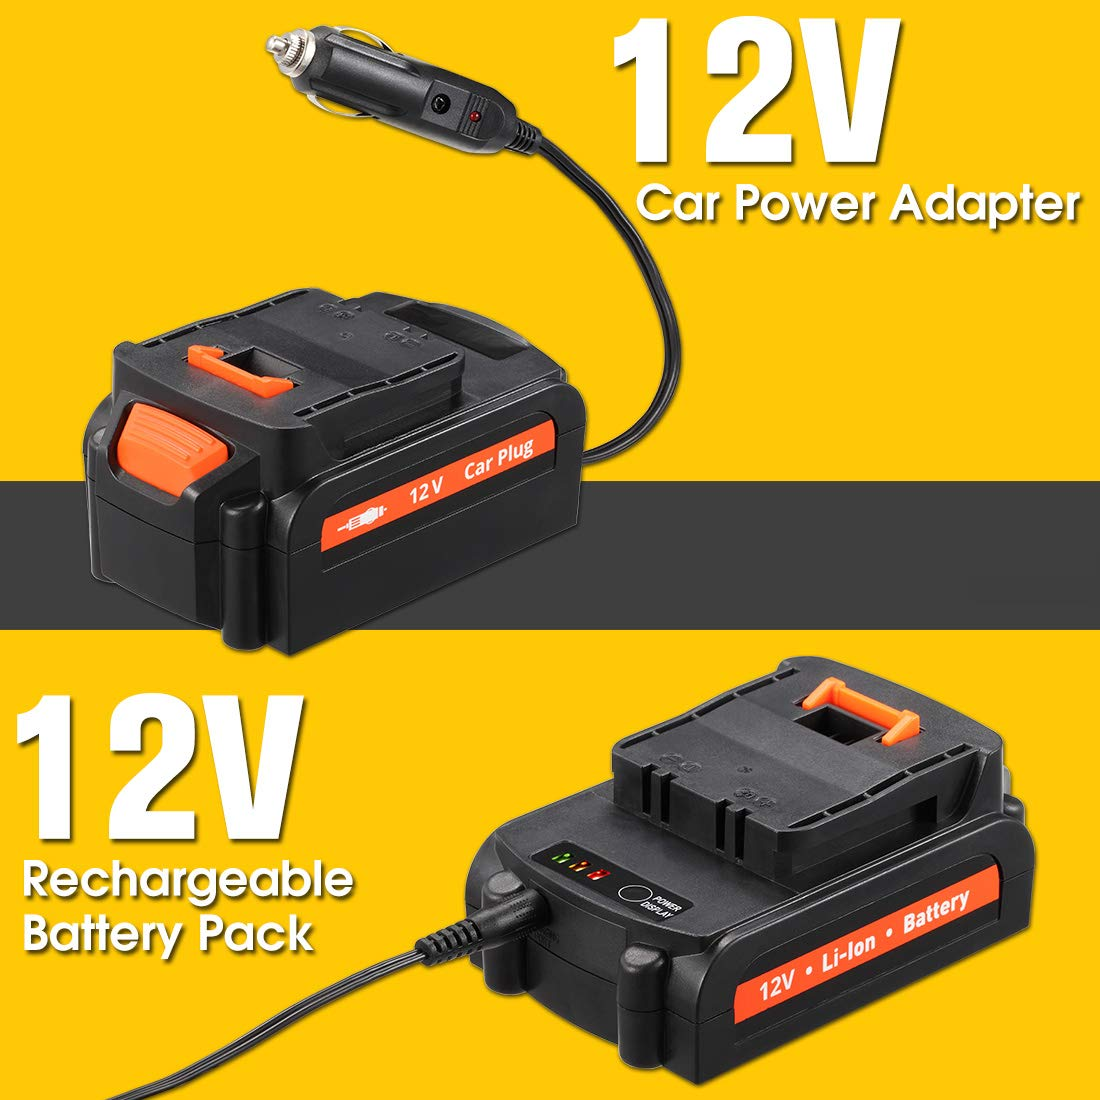 REXBETI Tire Inflator, Portable 12V Cordless Air Compressor for Tires, with Rechargeable Lithium-ion Battery and 12V Car Power Adapter, Easy to Read Digital Pressure Gauge, LED Lighting, 150PSI by REXBETI (Image #5)